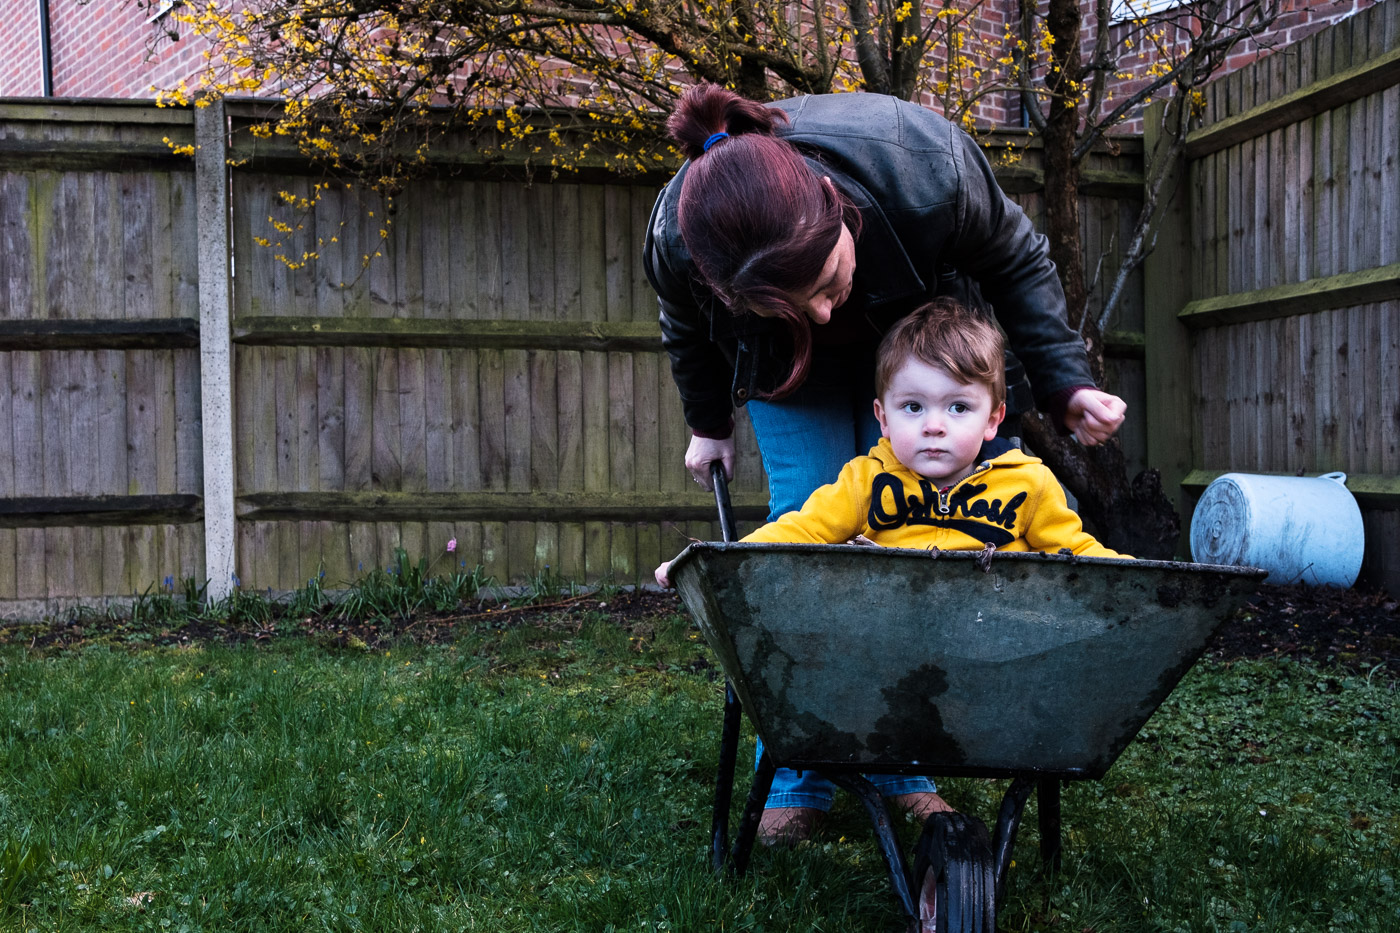 Mum having a word with son who is in a wheelbarrow